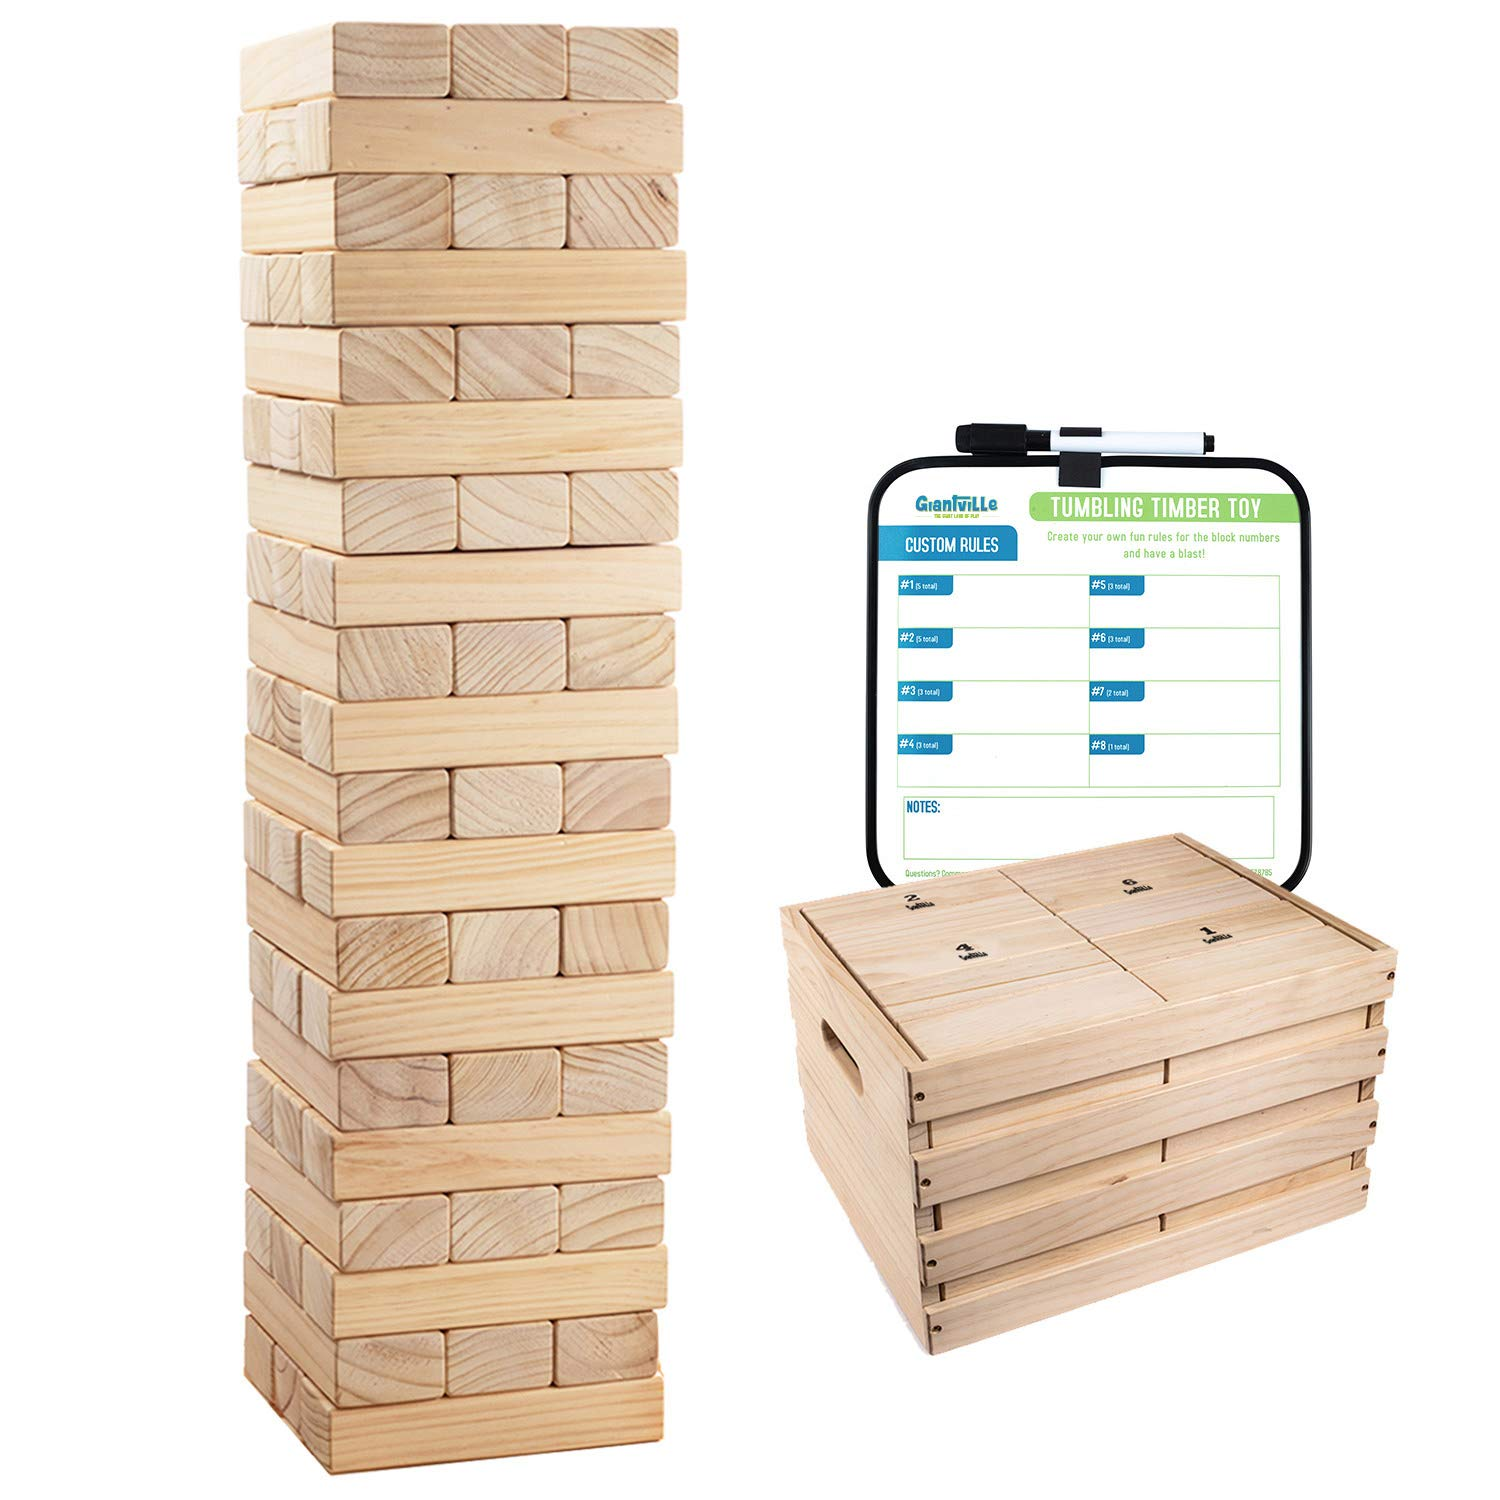 Giant Tumbling Timber Toy - 60 Extra Jumbo Wooden Blocks Floor Game for Kids and Adults, w/ Storage Crate/Game Table-No Assembly Required - Premium Pine Wood, Life Size- Grows to Over 6-feet